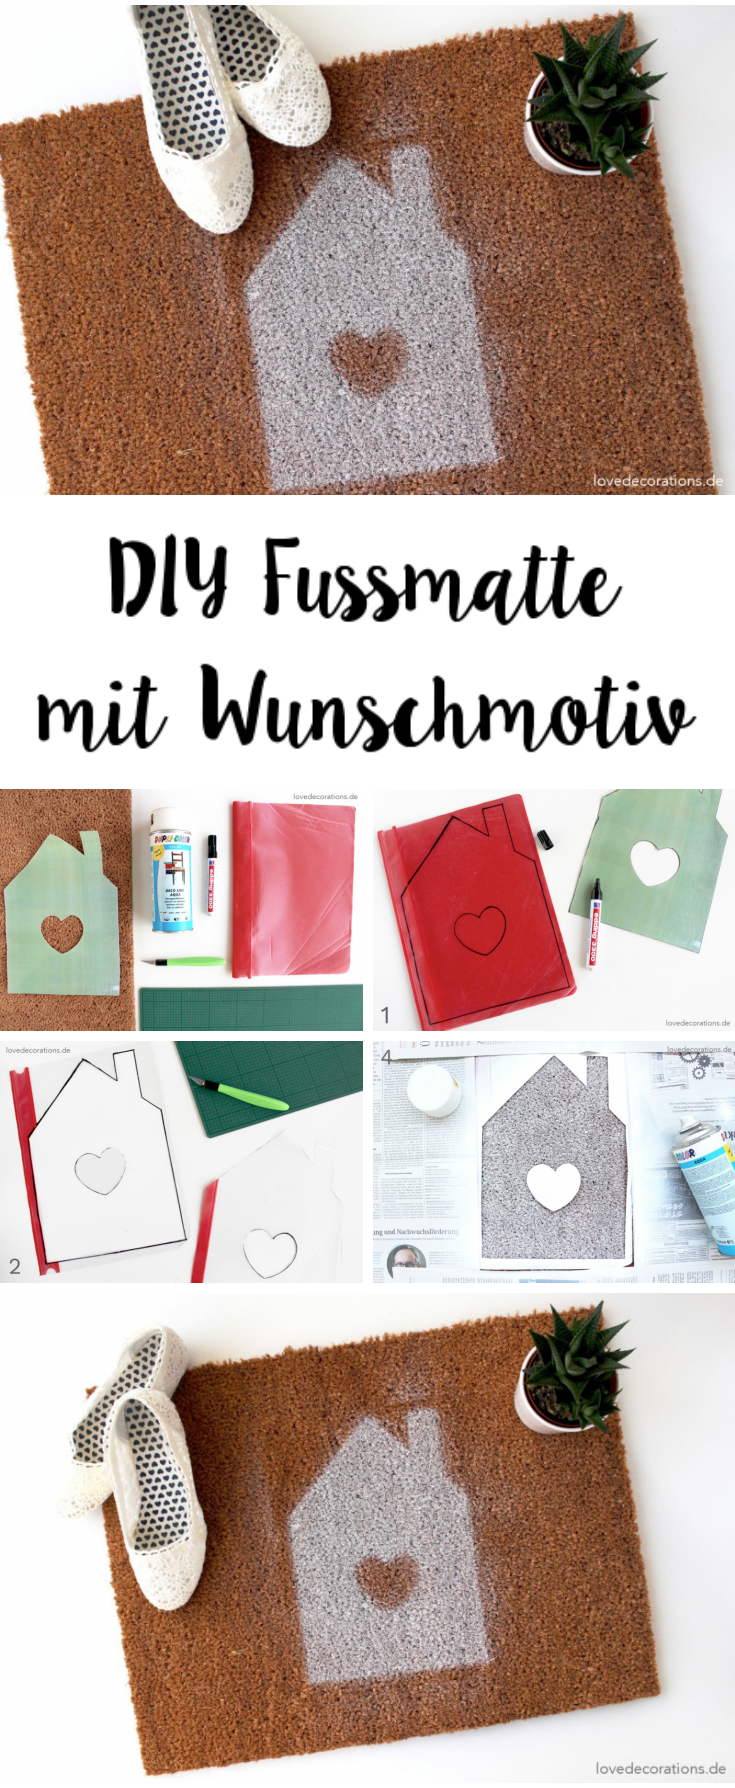 diy fu matte mit wunschmotiv und diese komischen tage hallo herbst blogparade gestalten diy. Black Bedroom Furniture Sets. Home Design Ideas